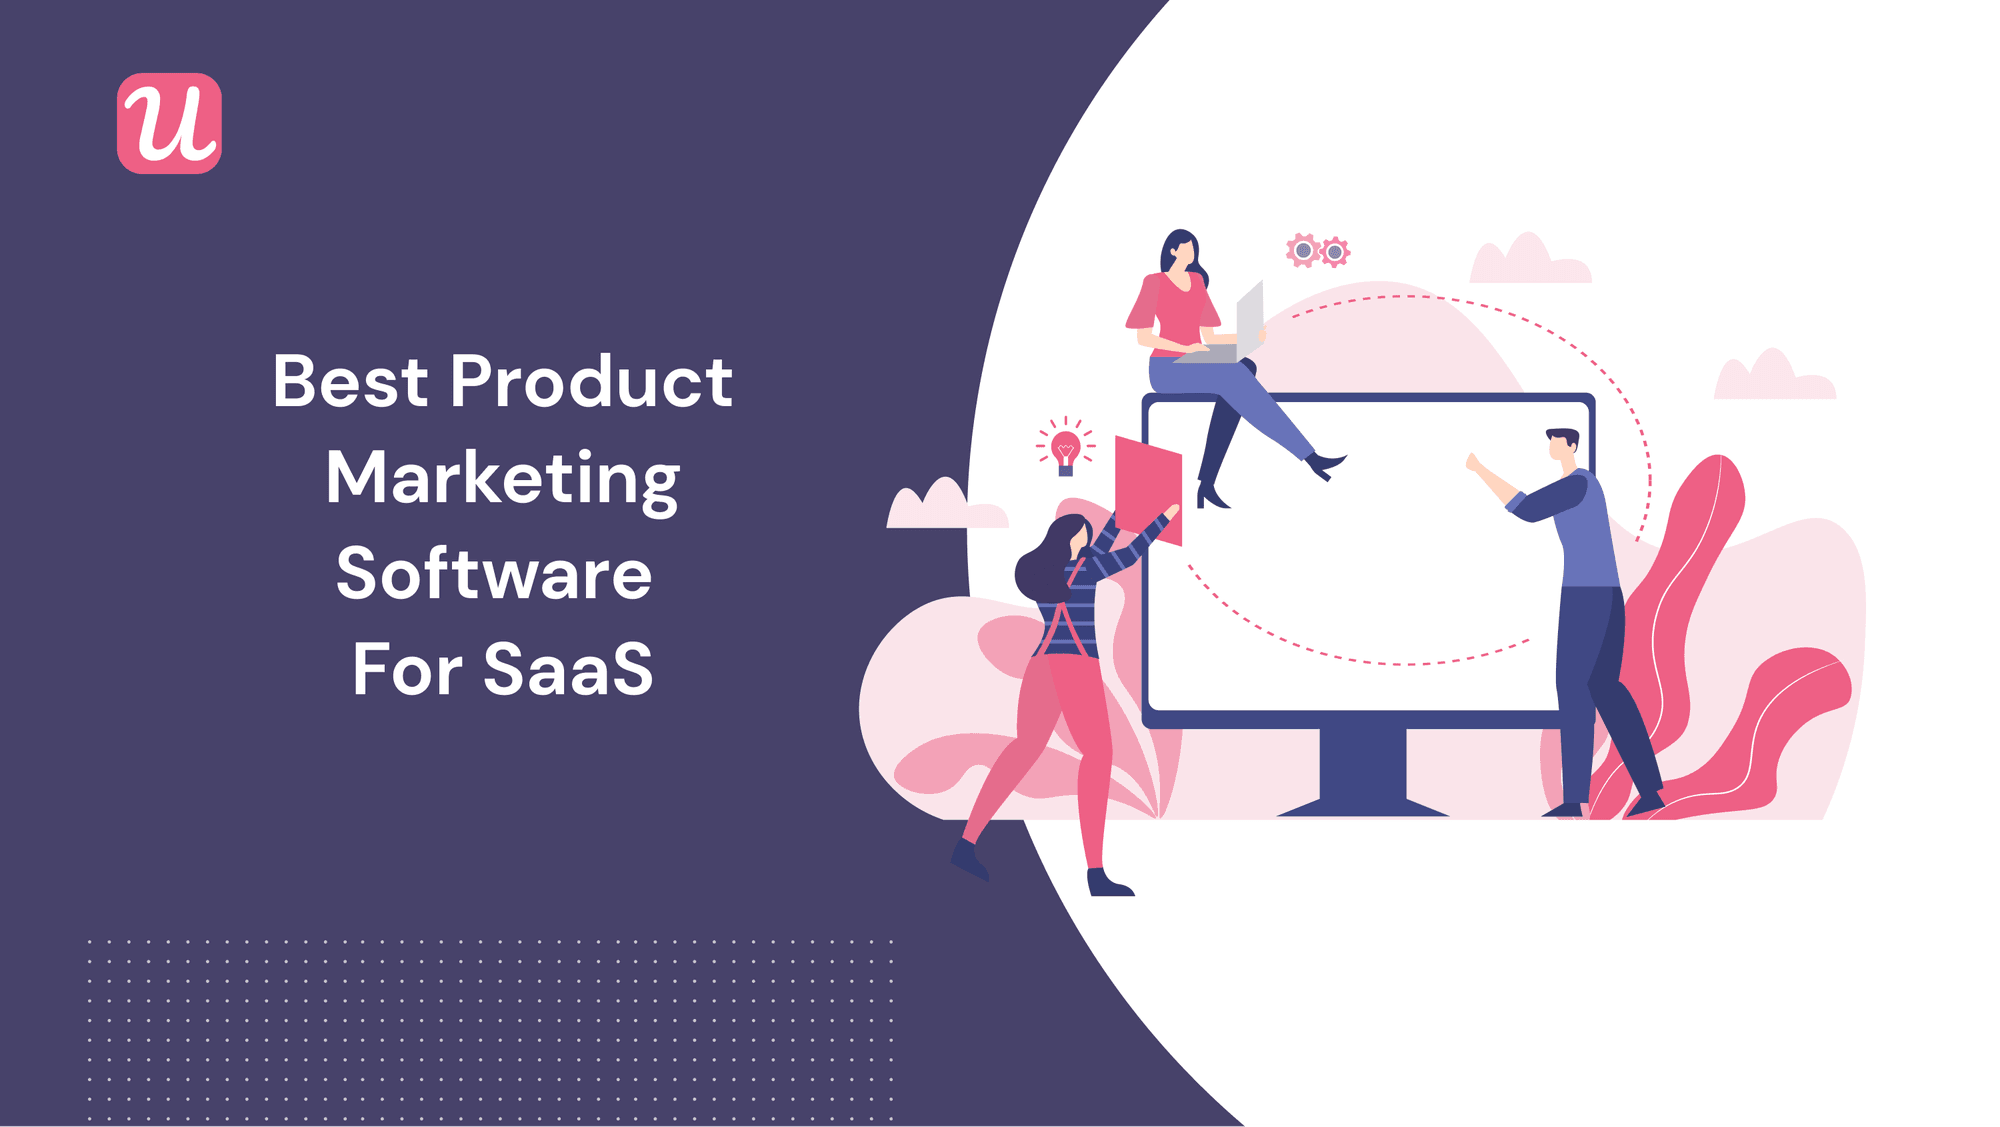 Best product marketing software for SaaS